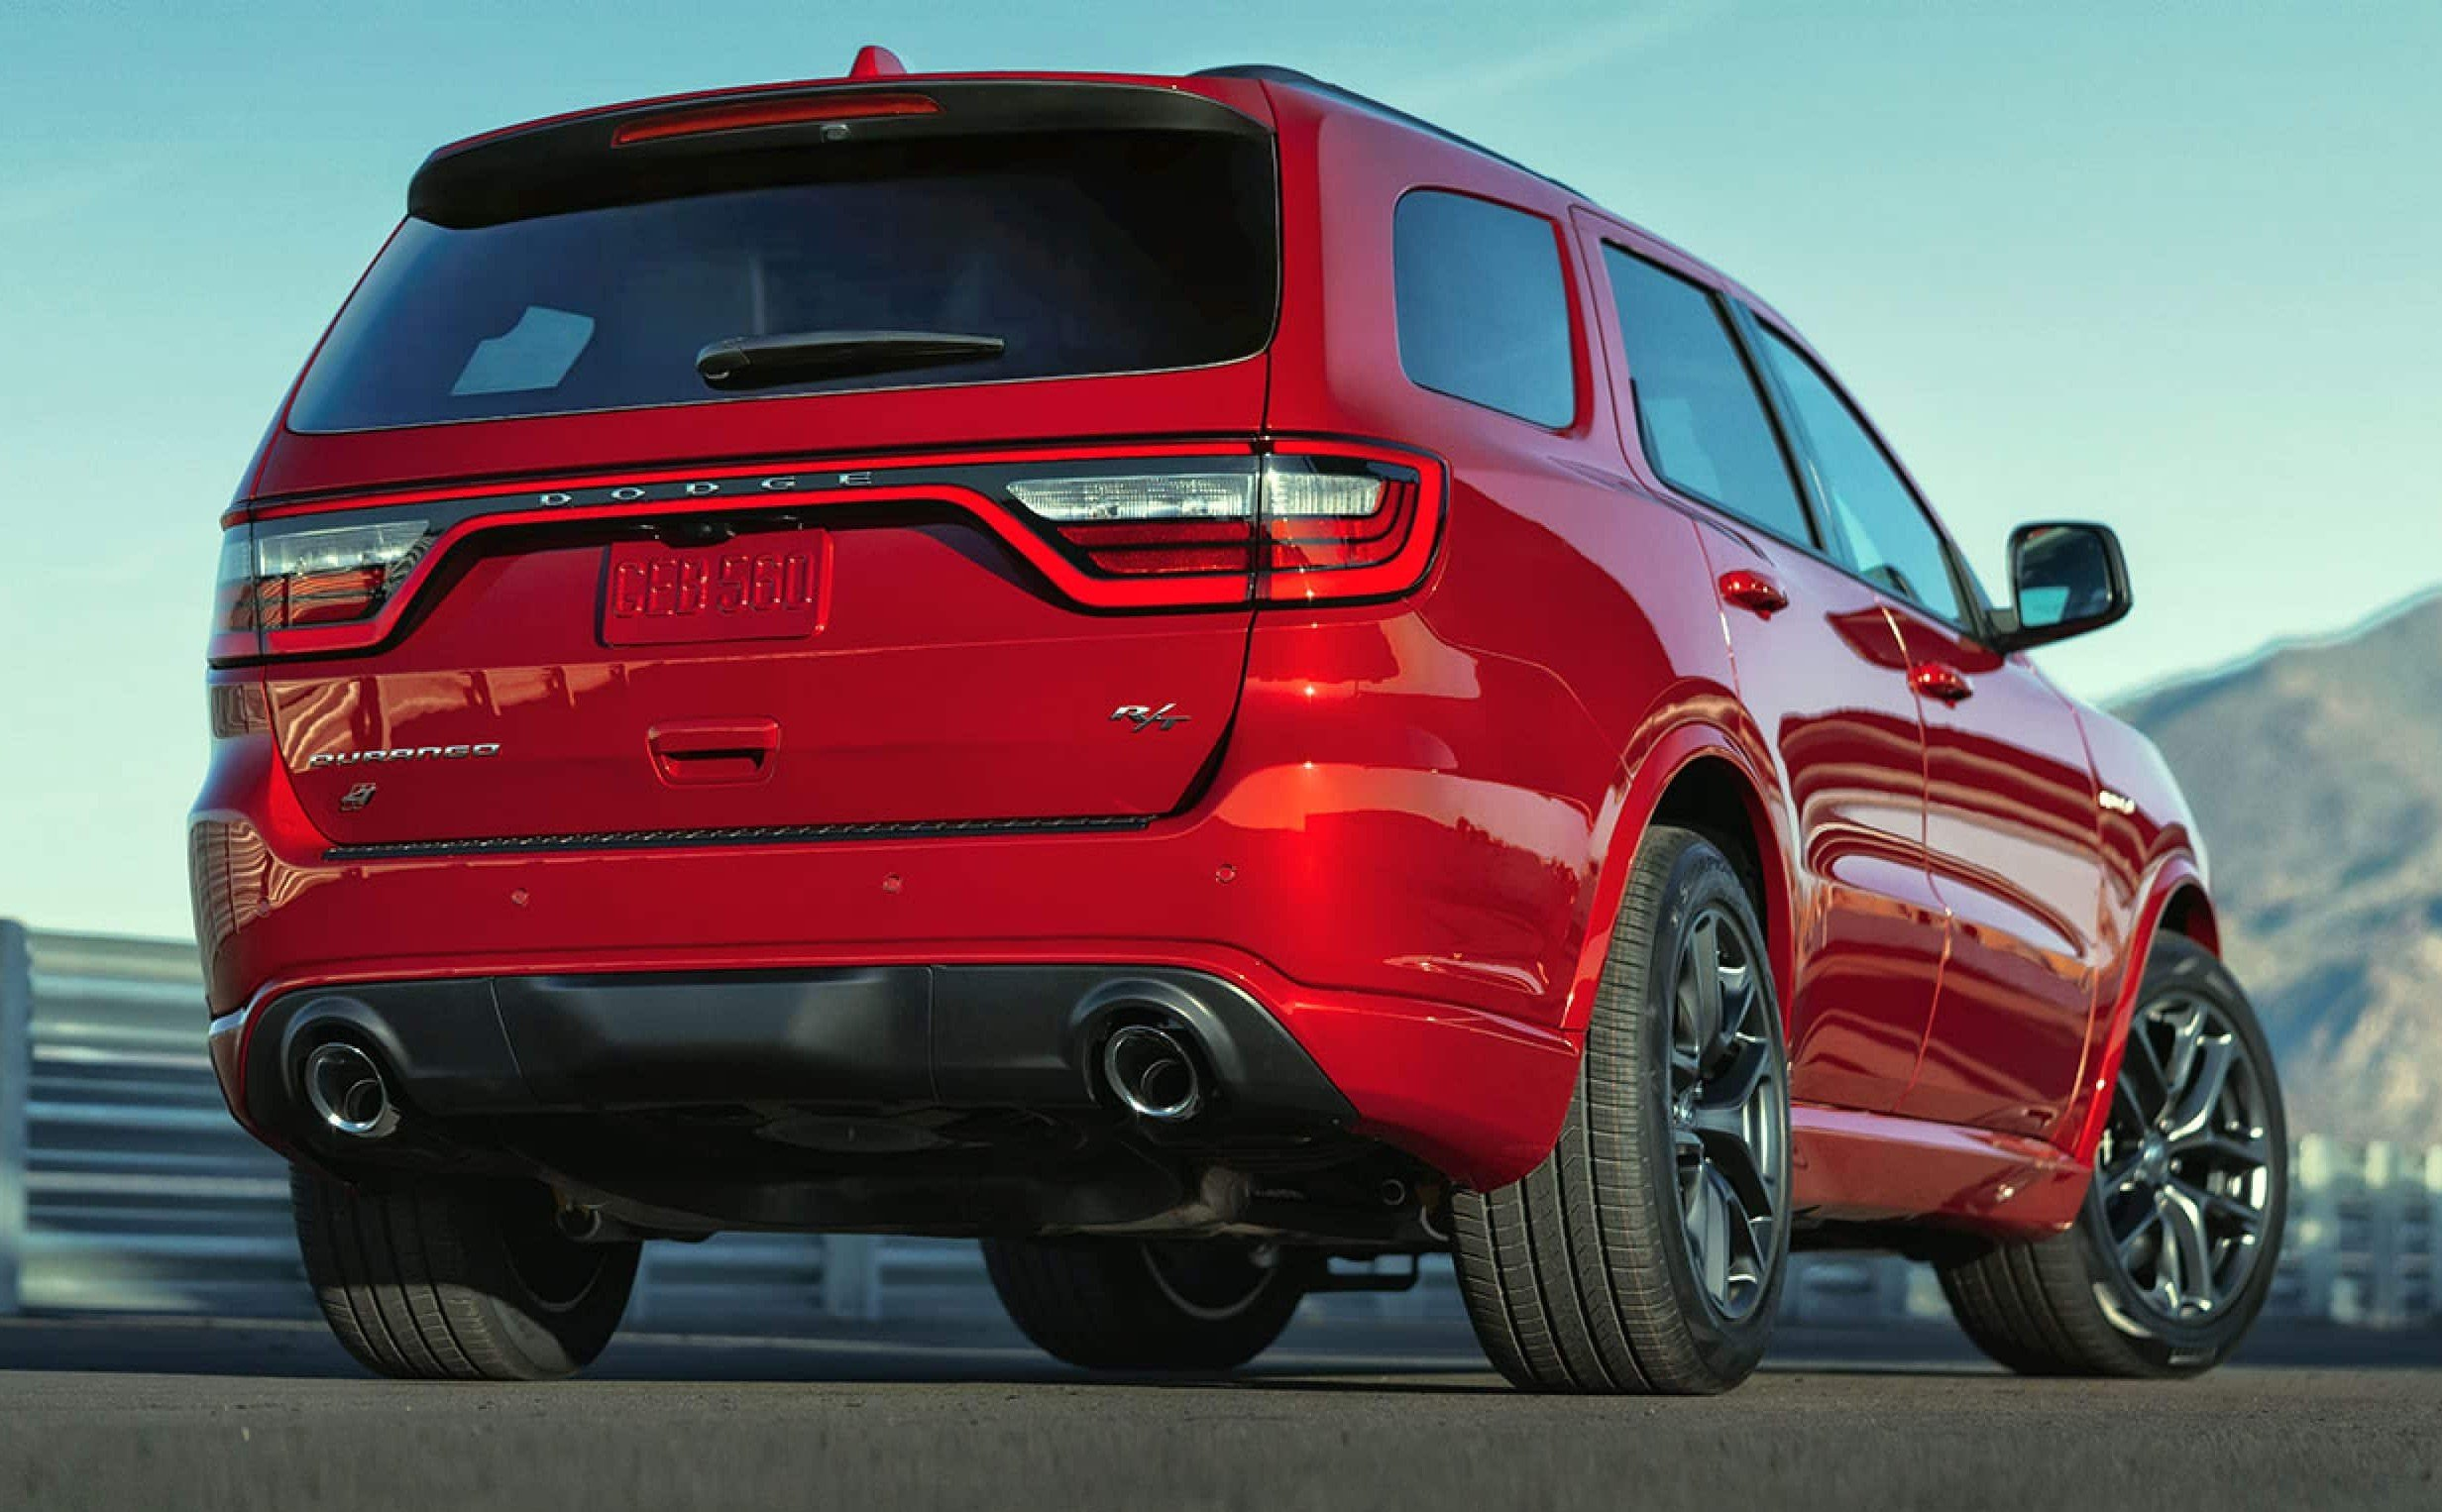 The new 2021 Dodge Durango rear